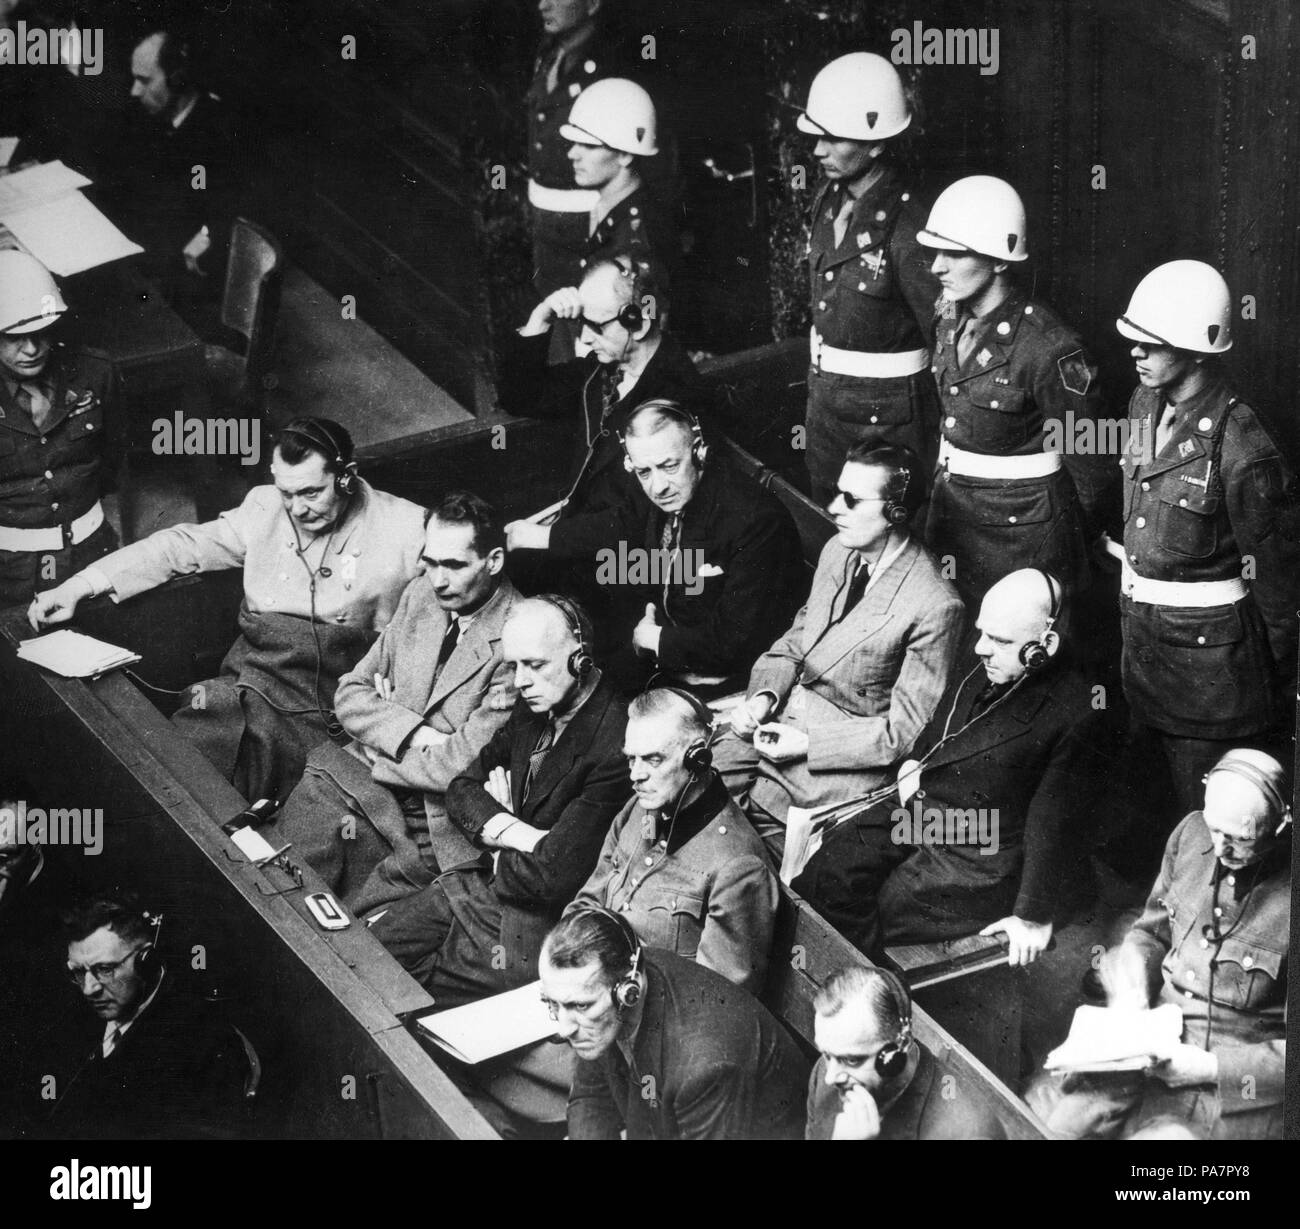 Defendants in the dock at the Nuremberg trials. Museum: State Central Military Museum, Moscow. Stock Photo